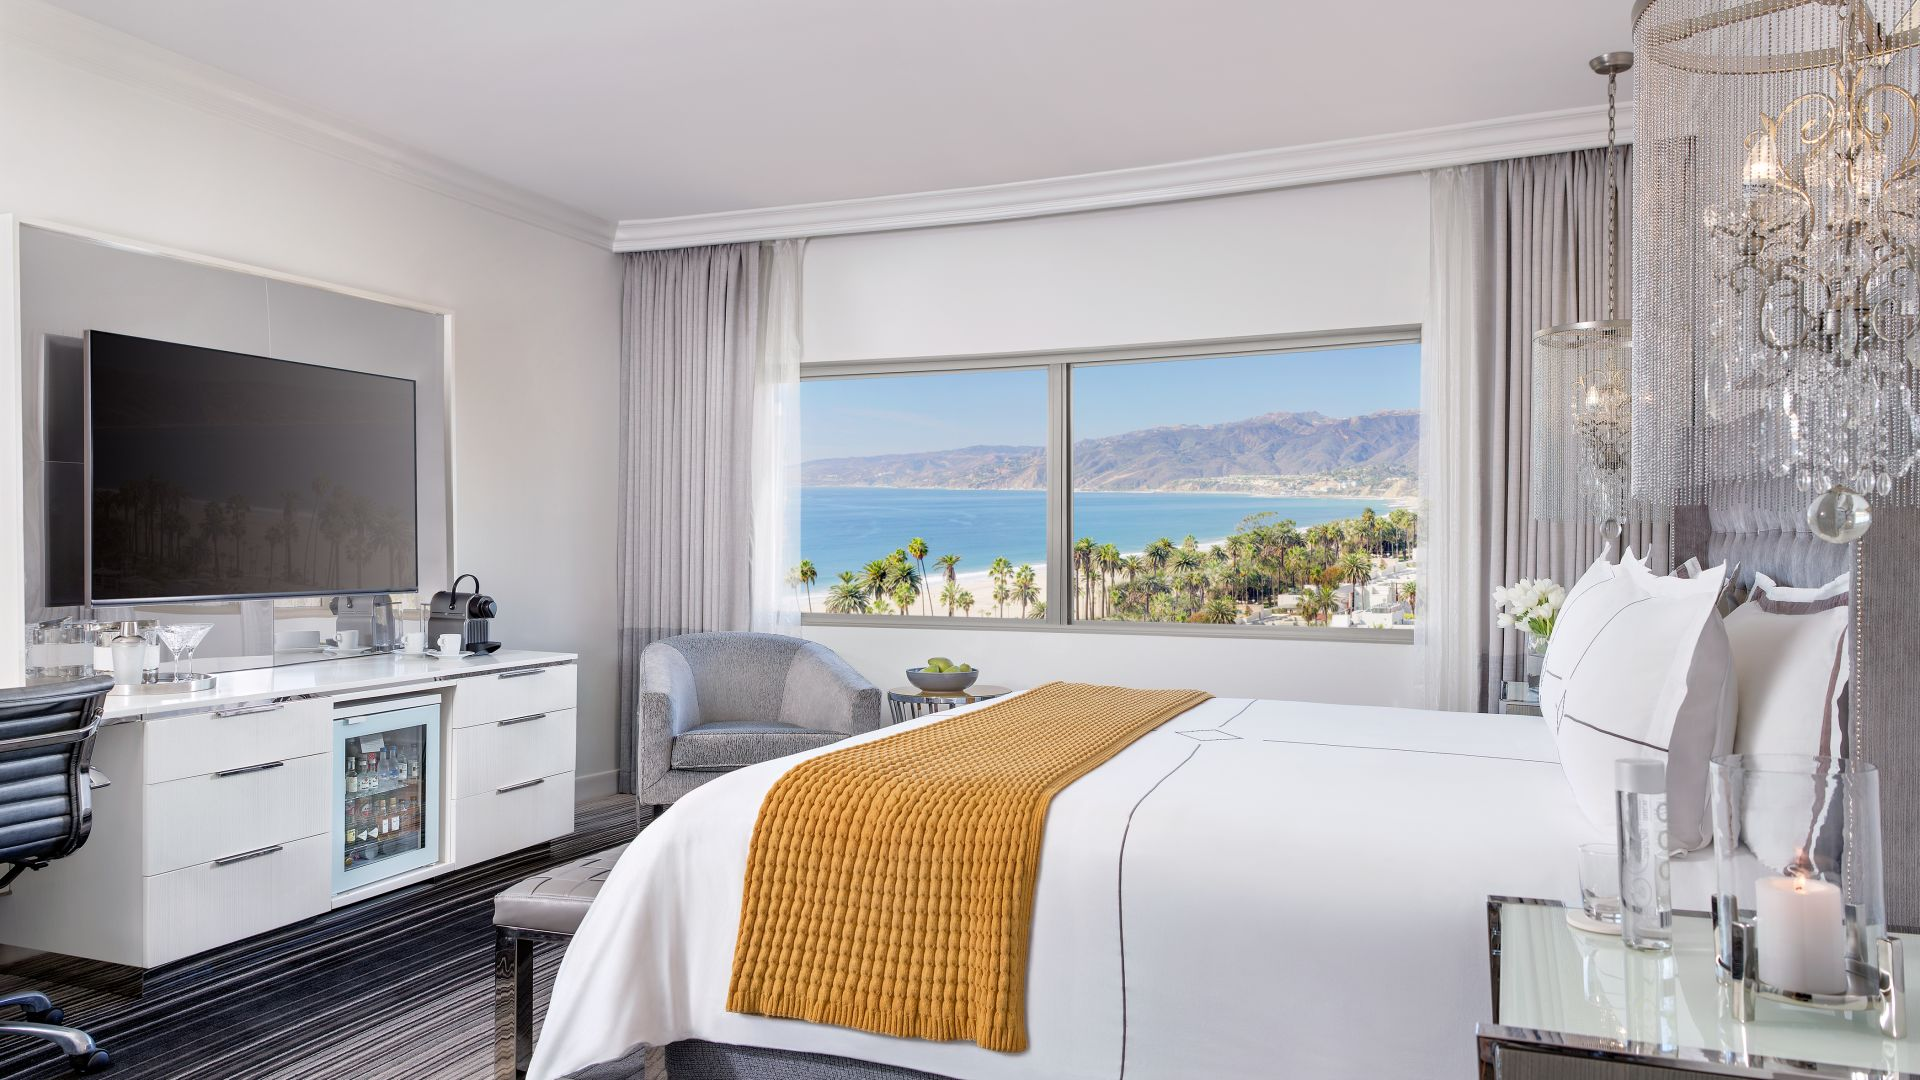 SEASIDE HAVEN ENJOY PACIFIC PANORAMAS, PERSONALIZED SERVICES, AND FINE DINING IN A VIBRANT SETTING